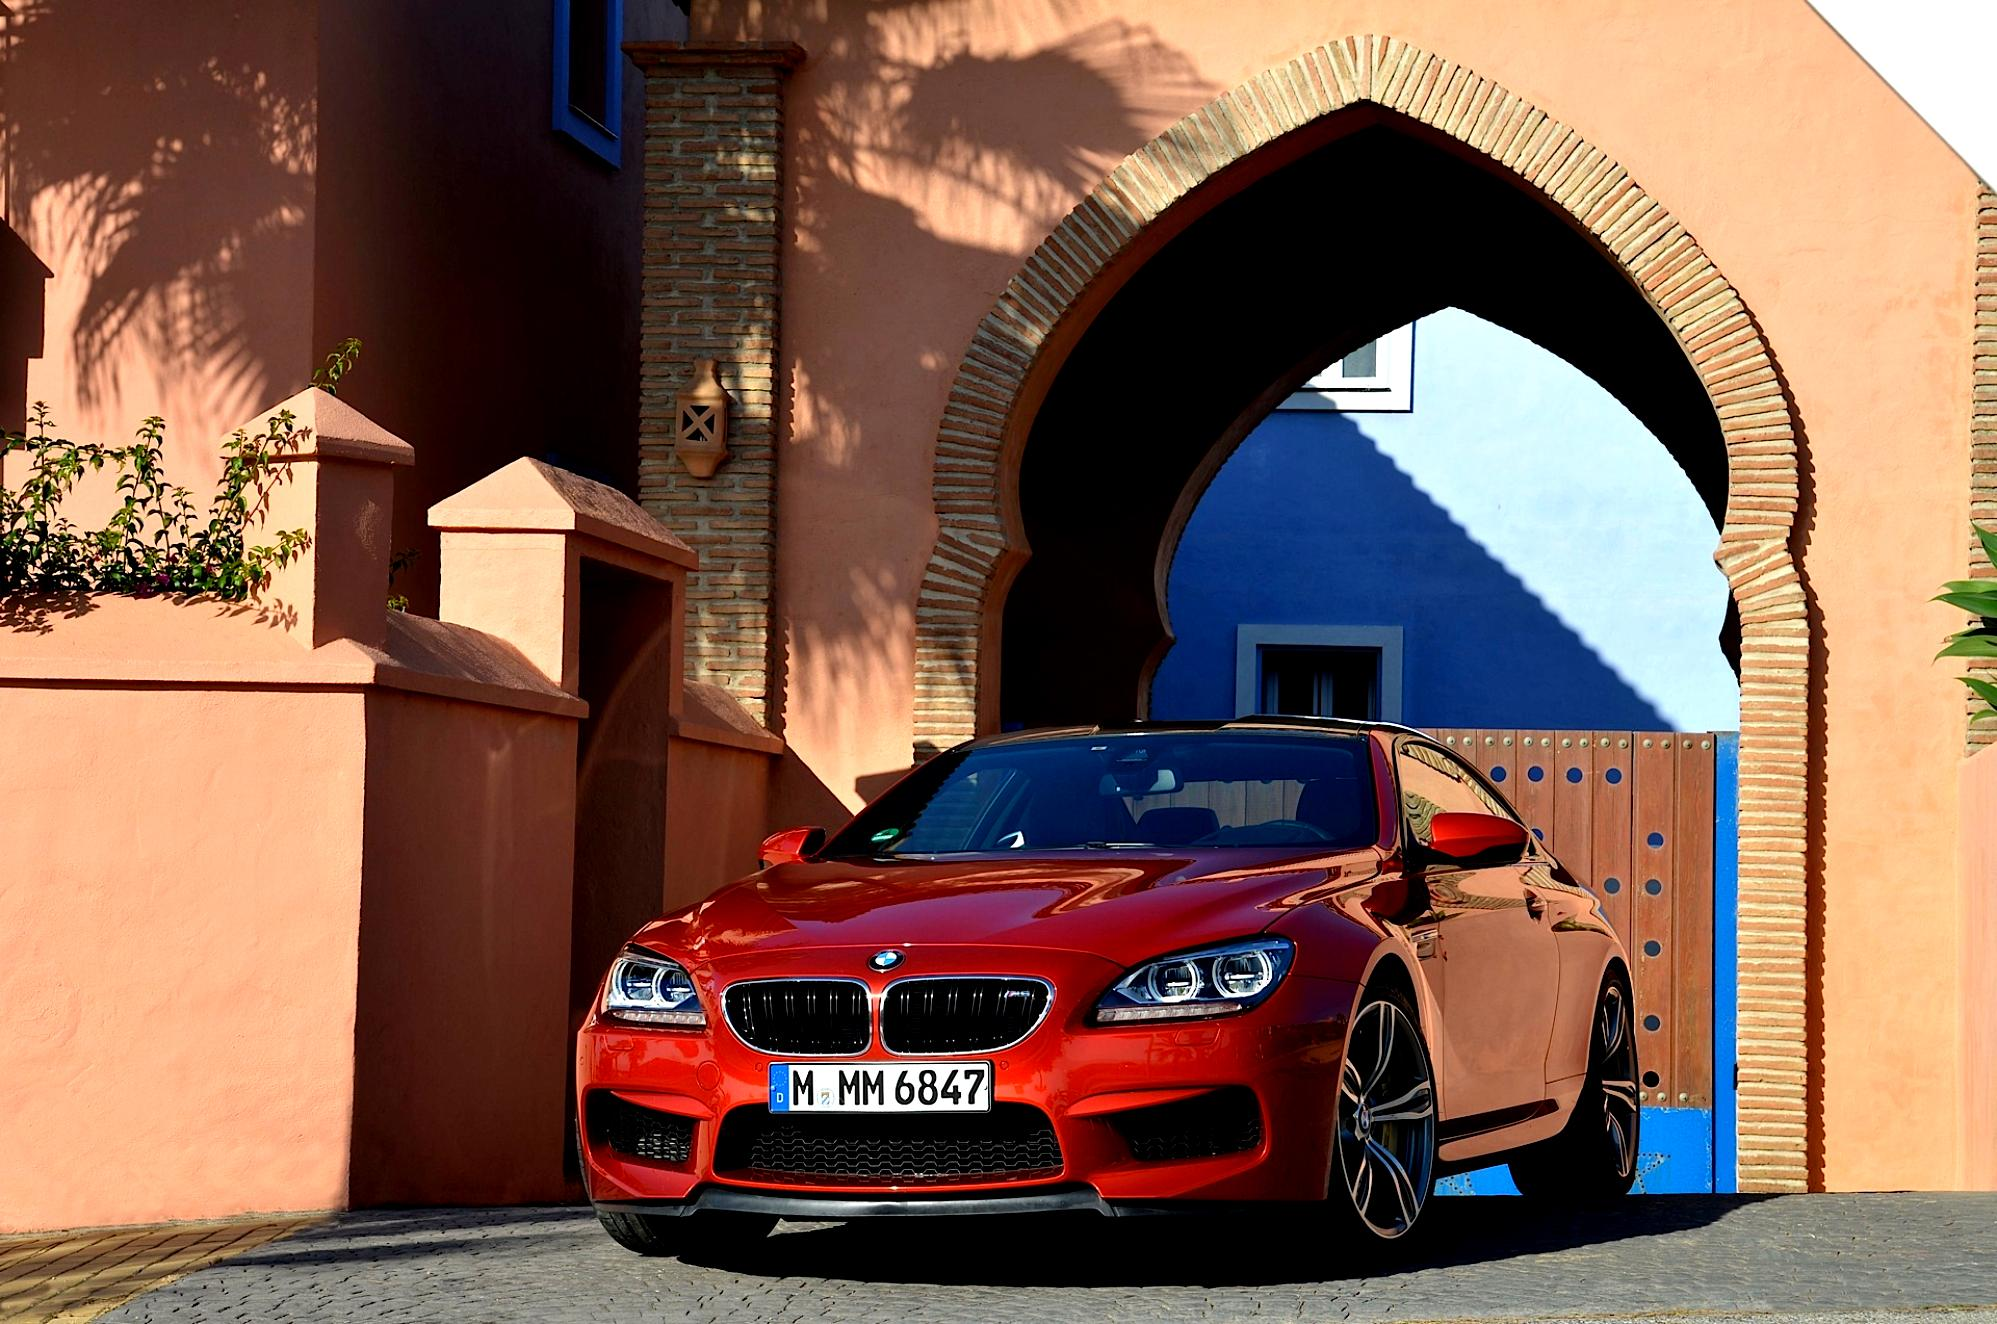 BMW M6 Coupe F13 2012 #76